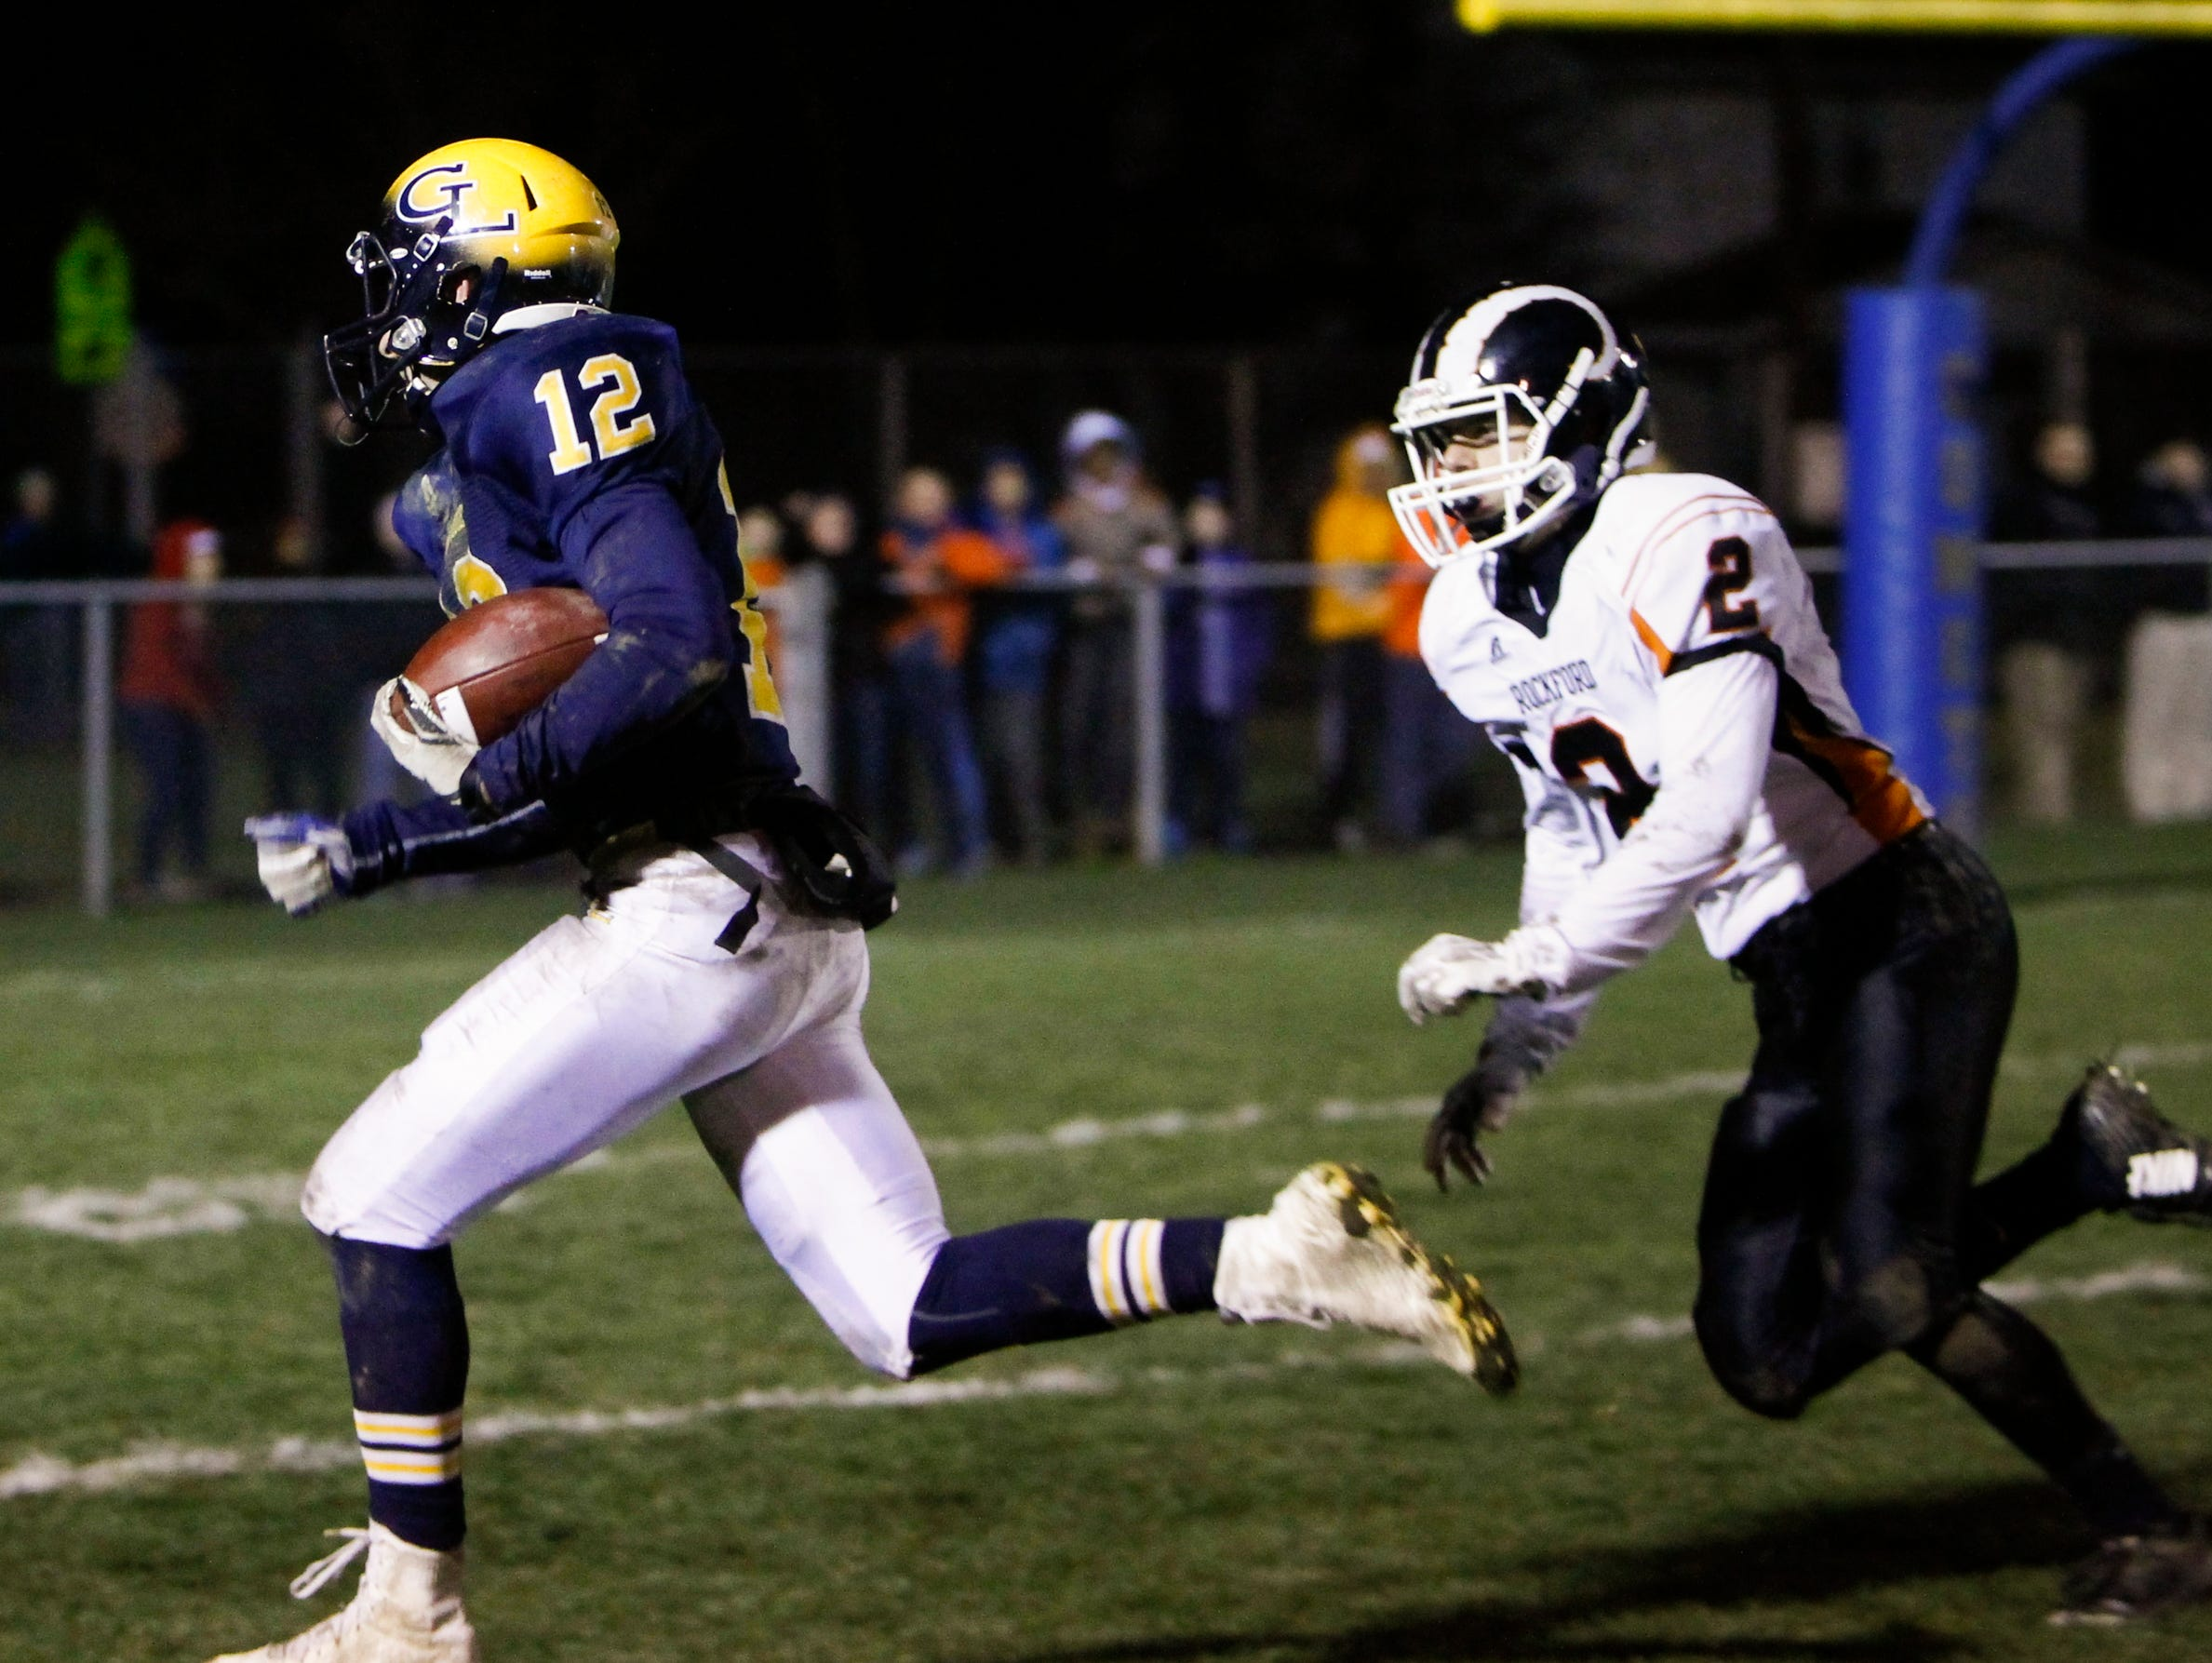 Grand Ledge senior Luke Lalumia heads into the end zone for a touchdown, tying the score 16-16 in the fourth quarter against Rockford Friday, November 13, 2015, during the Div. 1 regional final at Grand Ledge. Grand Ledge won 36-16.